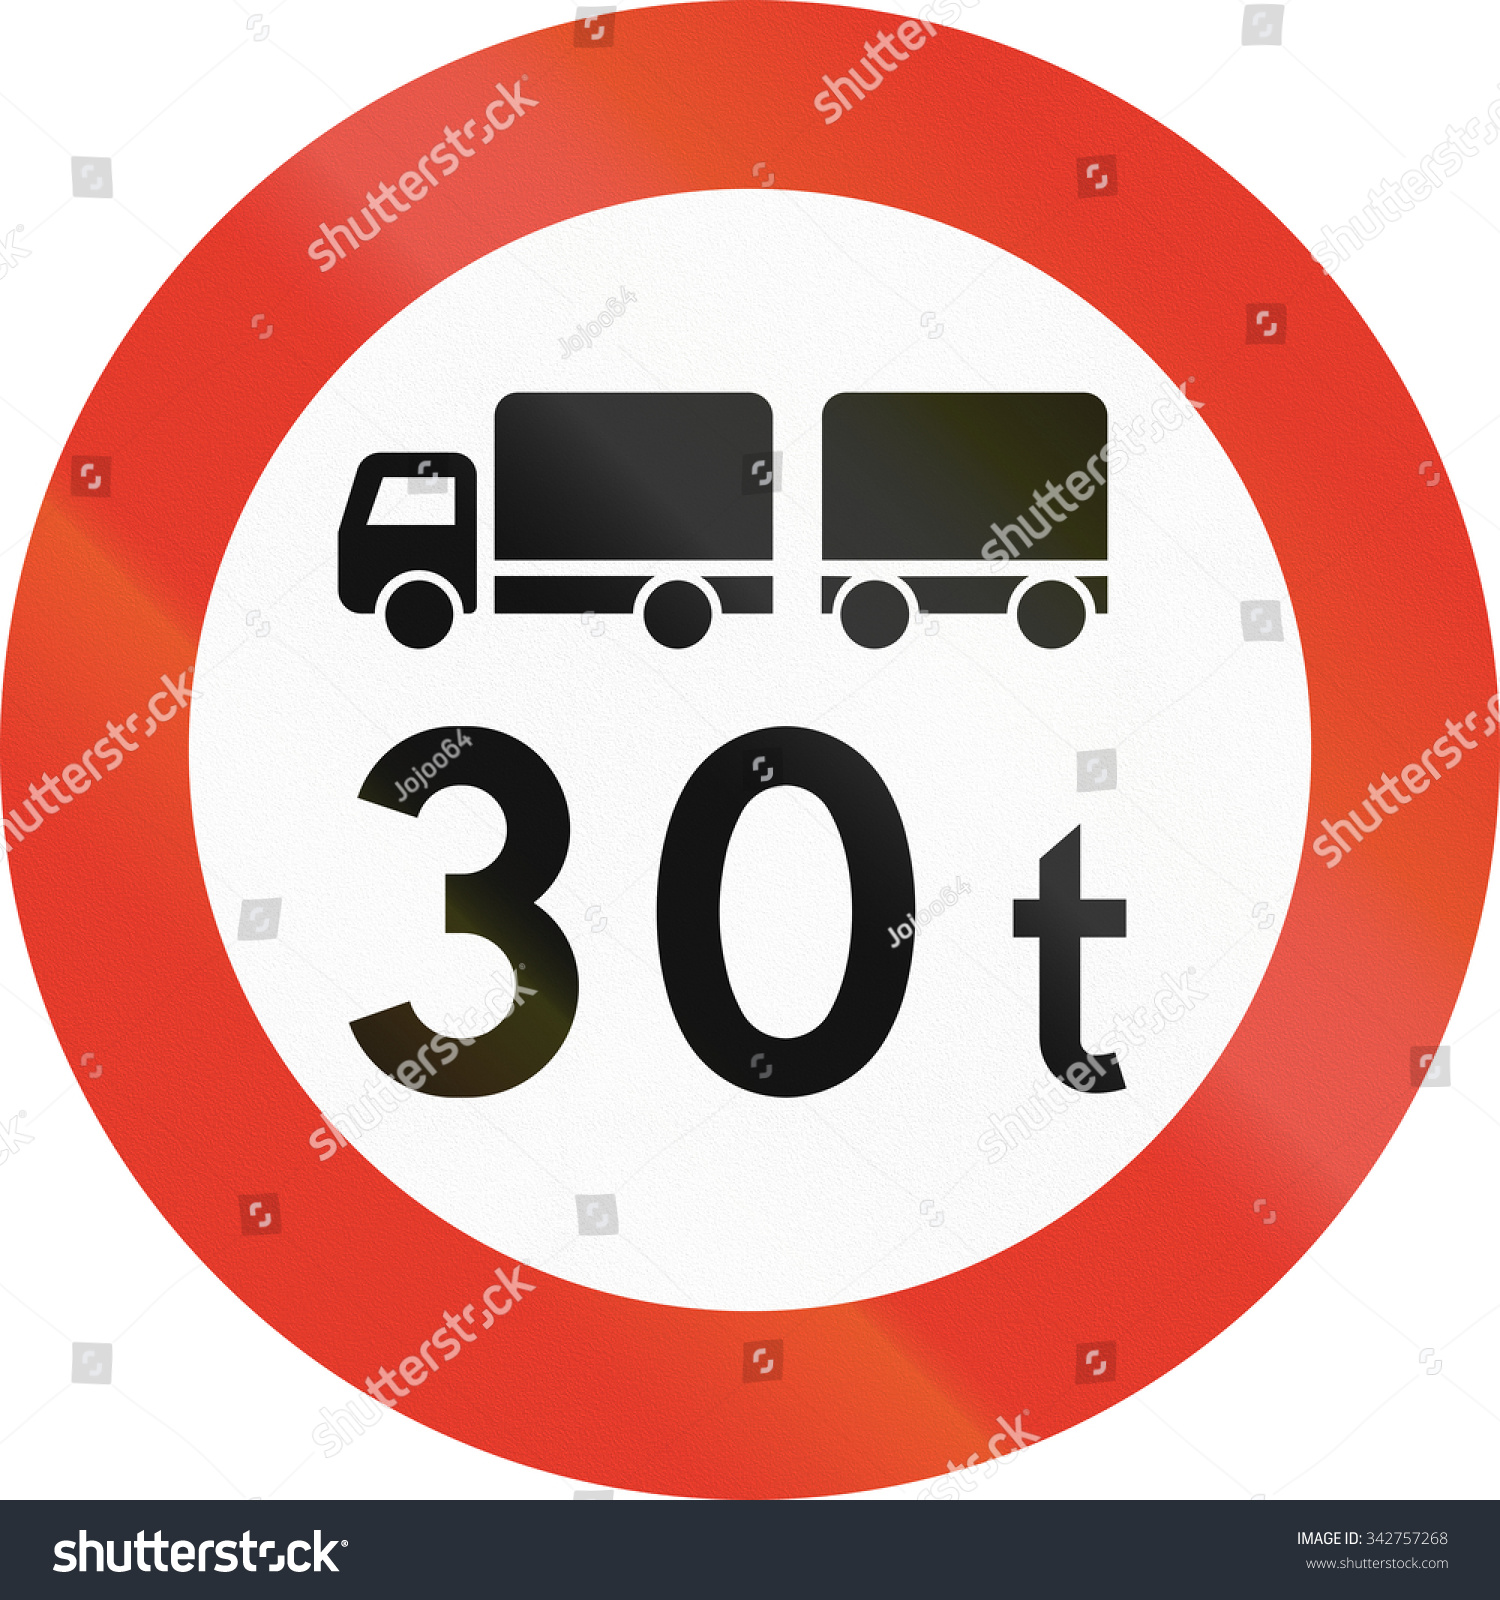 Norwegian Regulatory Road Sign No Trucks Stock Illustration.